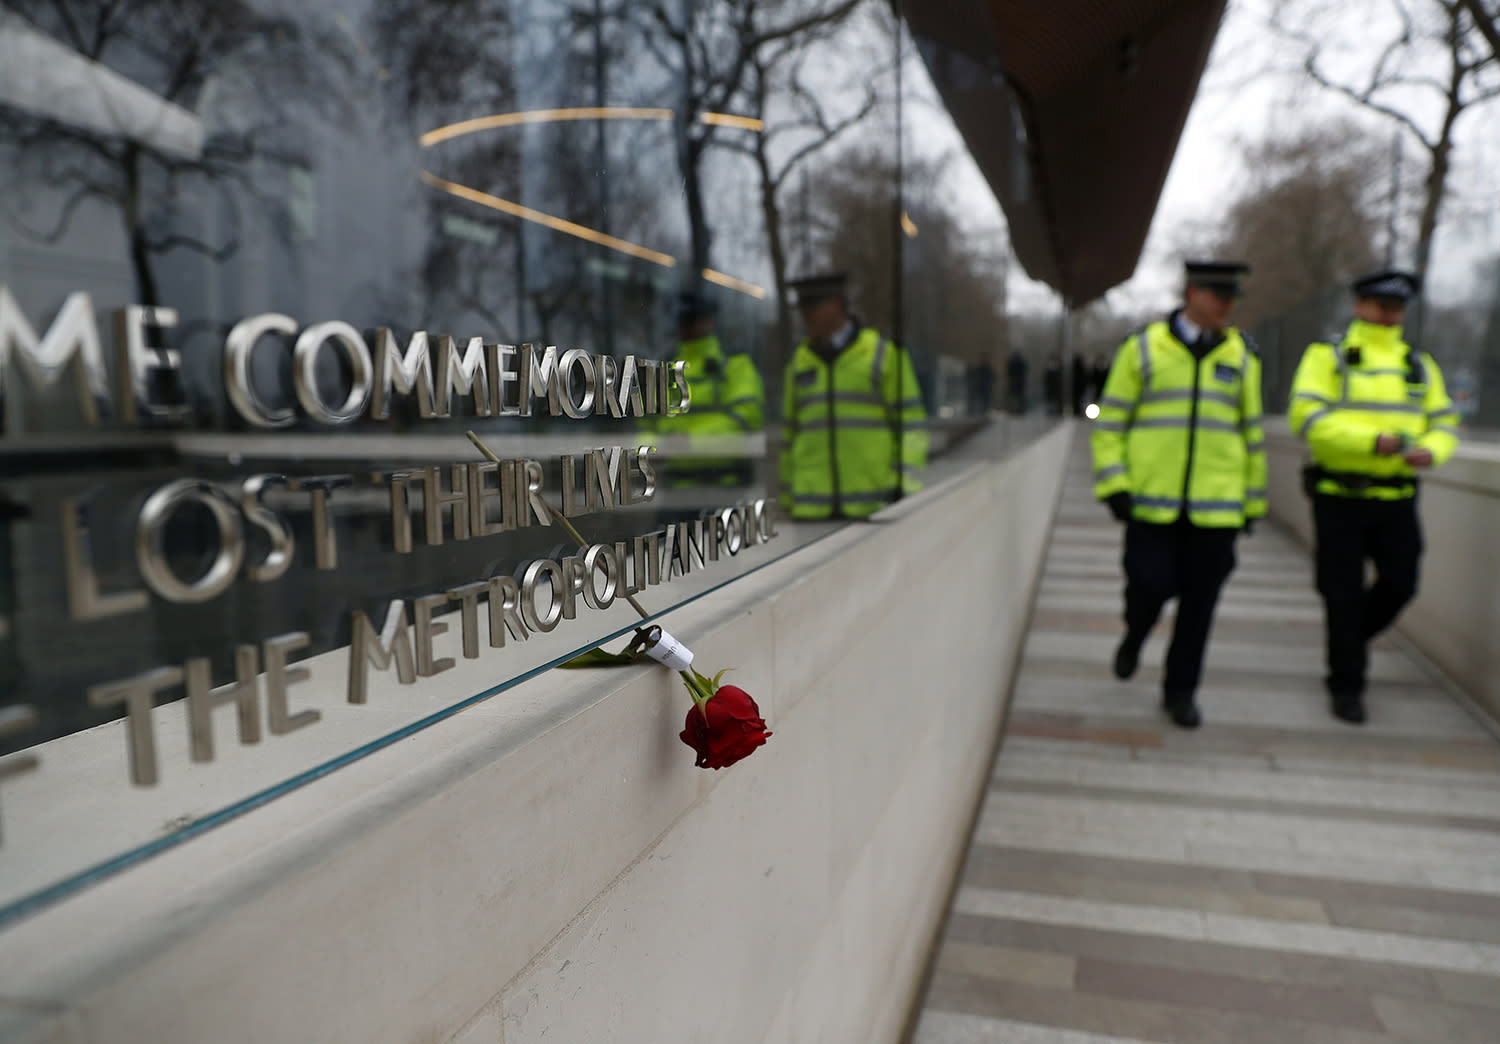 <p>A floral tribute is shown outside New Scotland Yard following Wednesday's attack outside the Houses of Parliament in London, Friday, March 24, 2017. (Peter Nicholls/Reuters) </p>